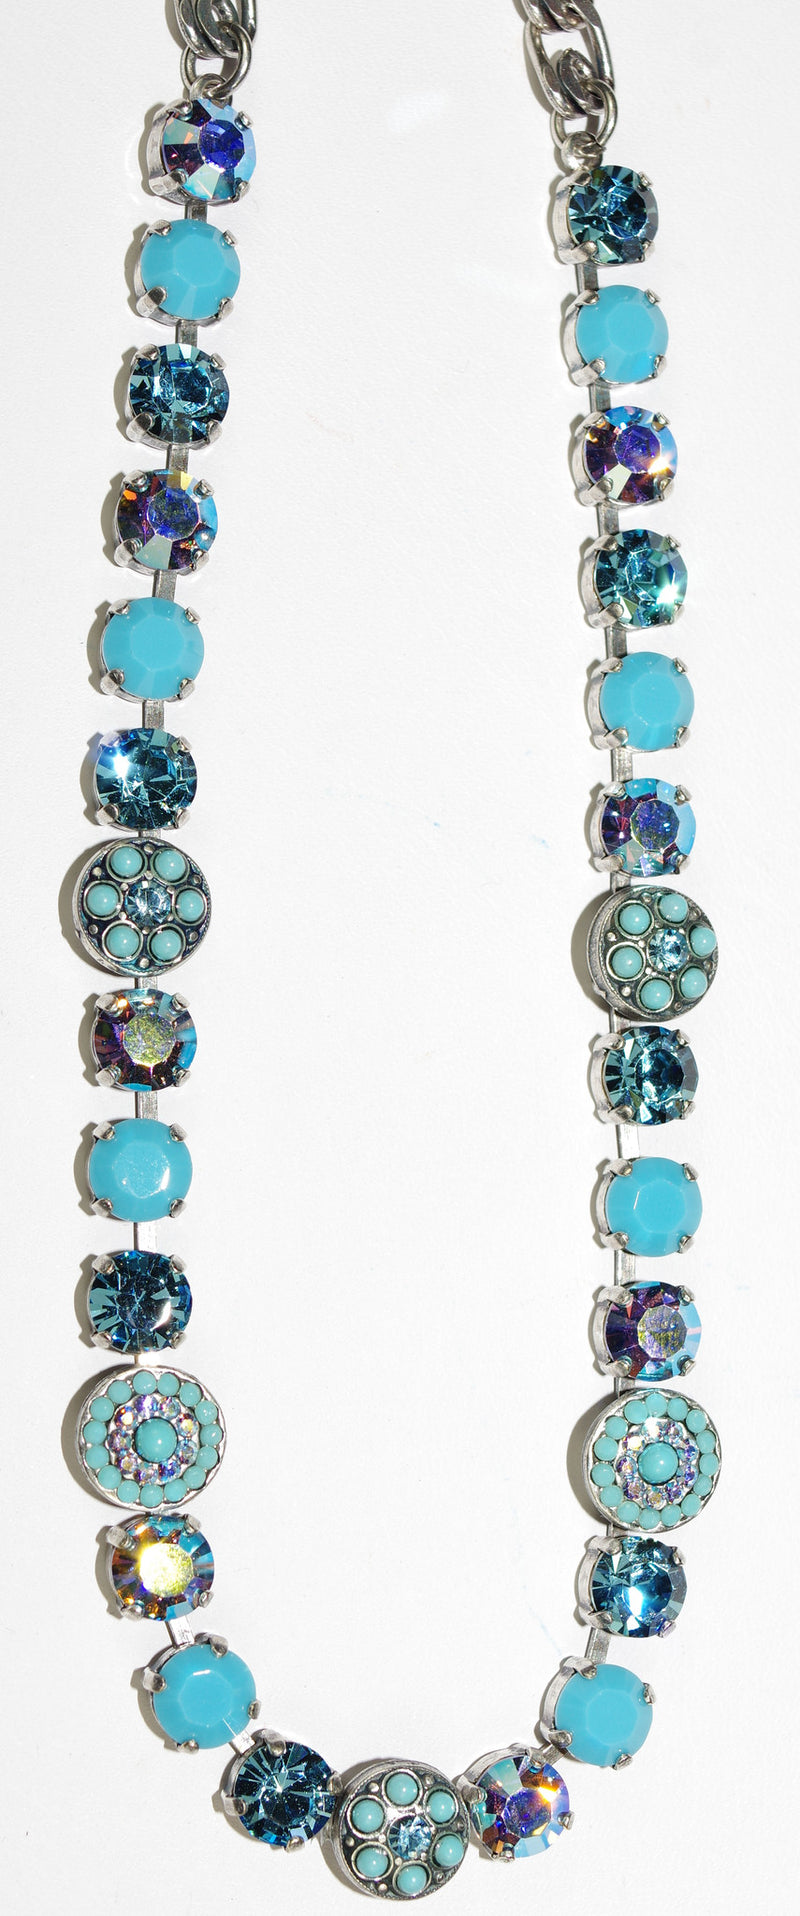 "MARIANA NECKLACE BLISS: turq, blue, a/b stones in silver setting, 17"" adjustable chain"